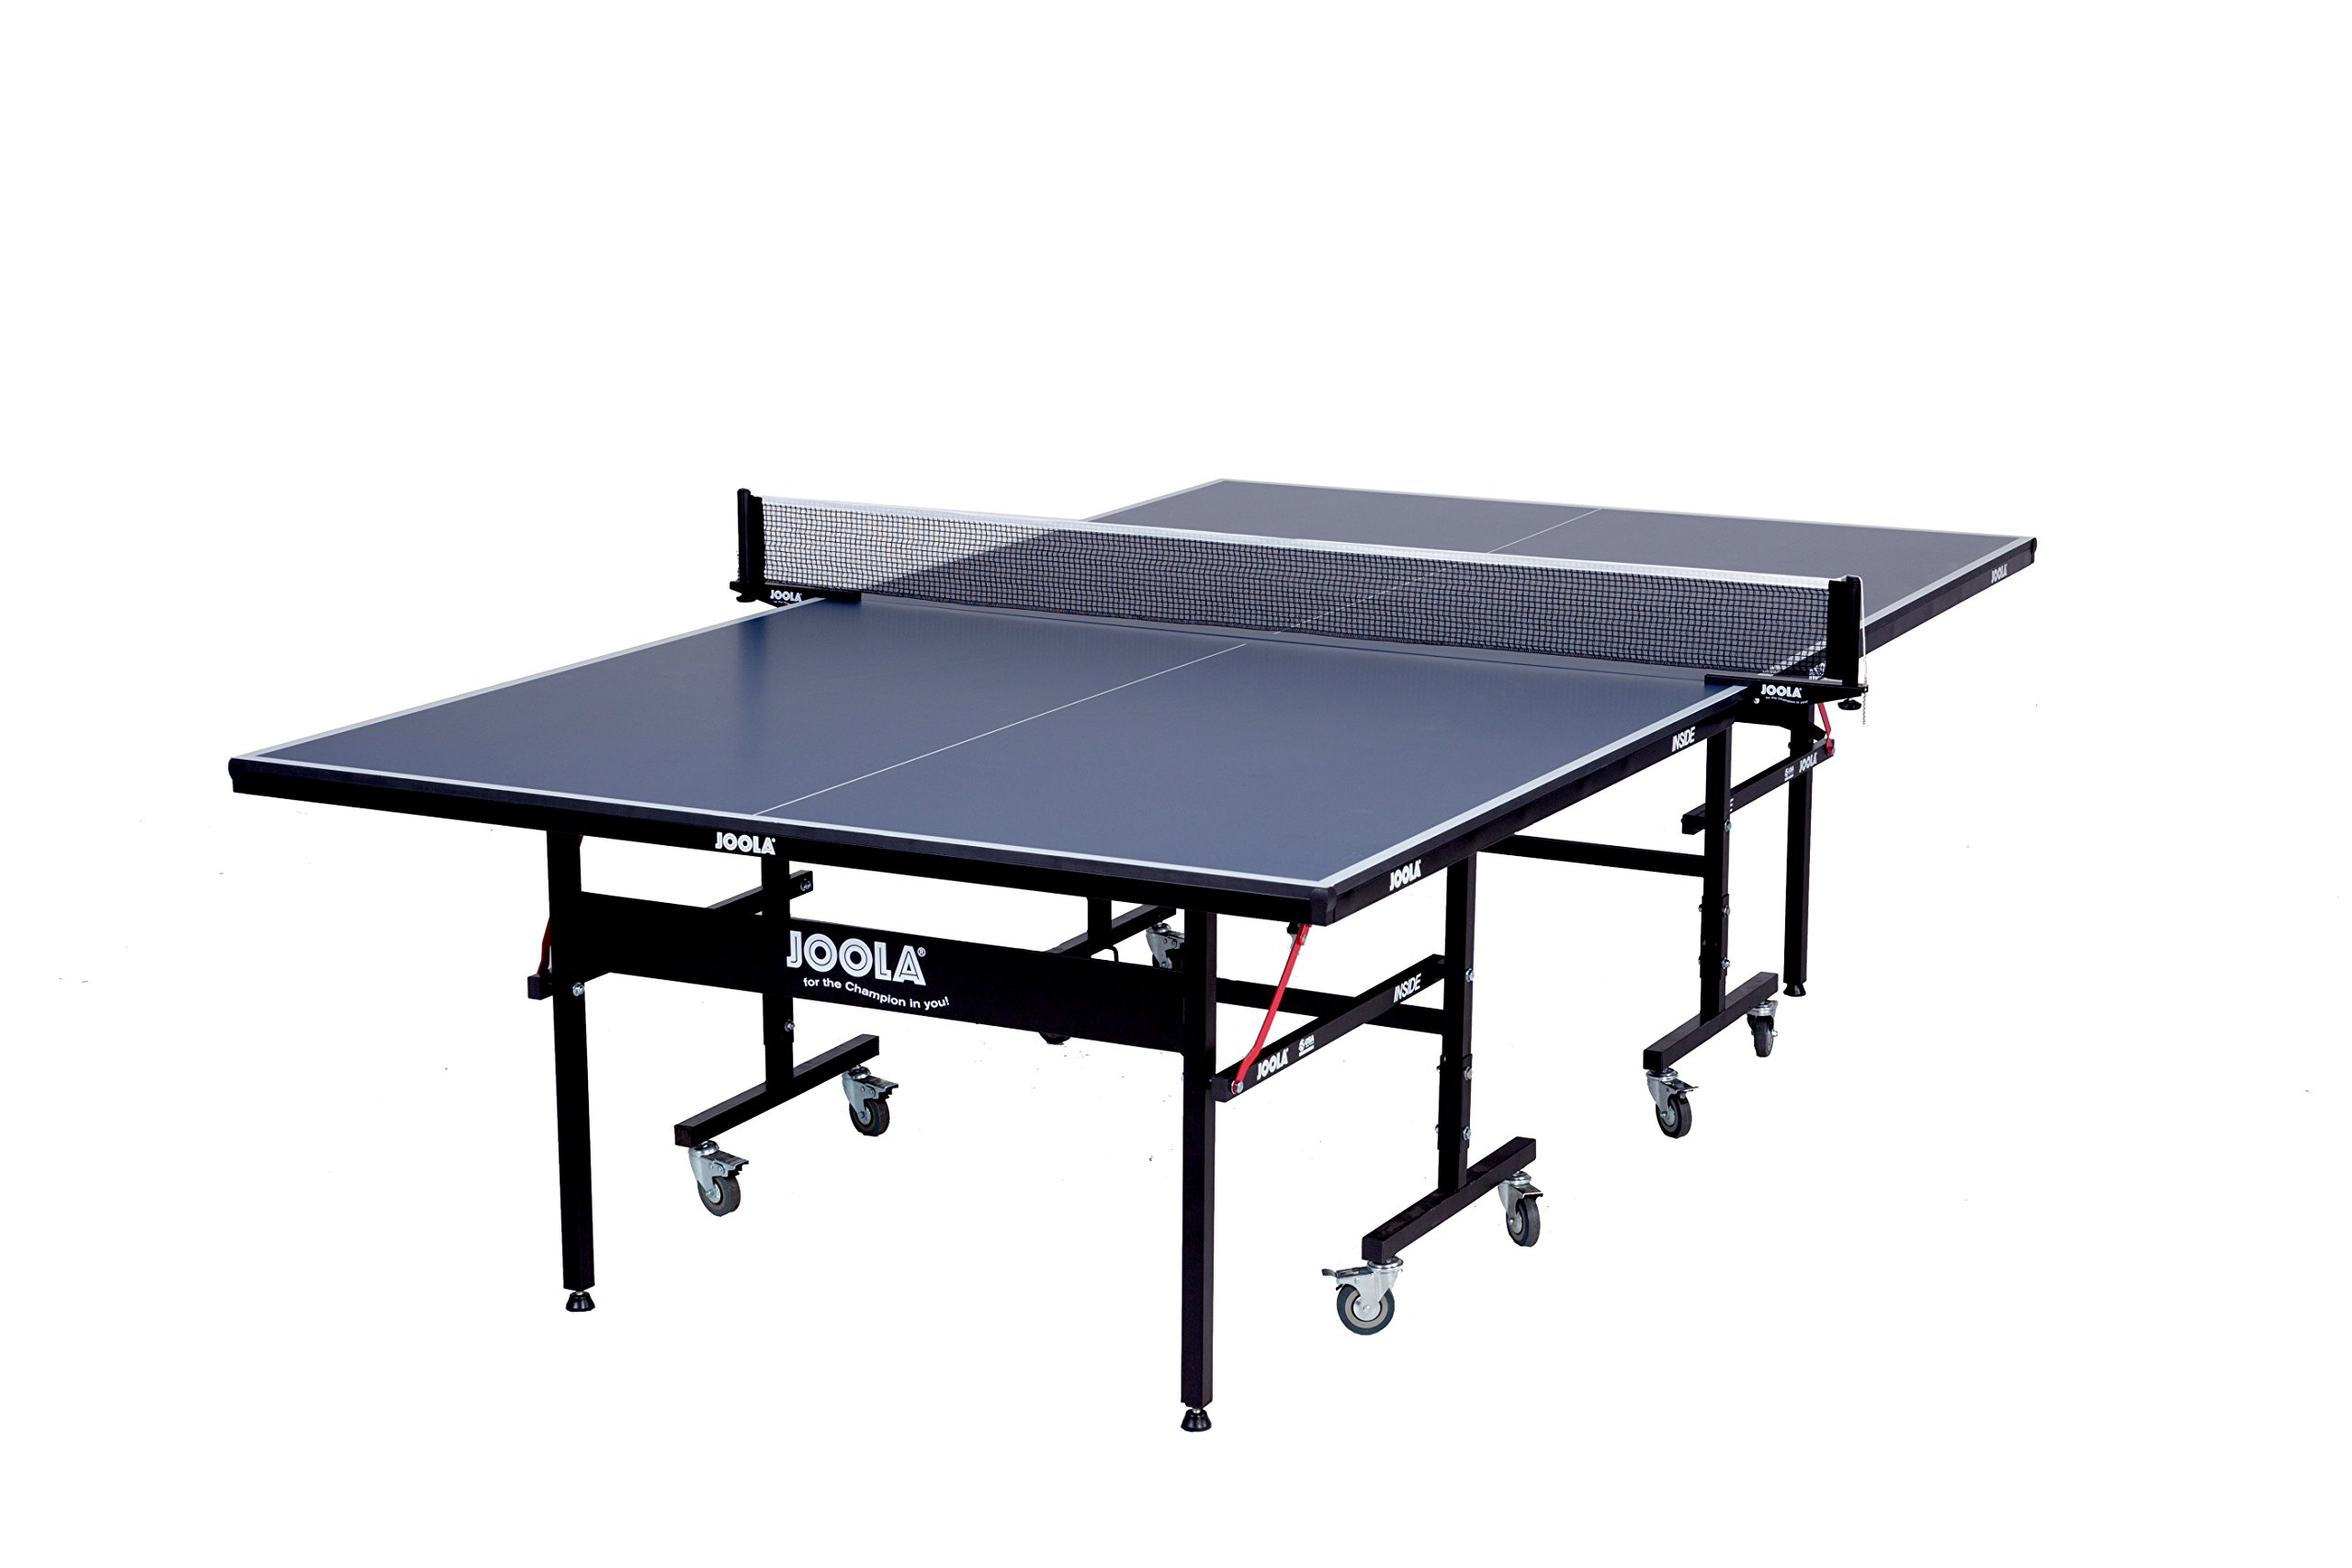 JOOLA Inside 15mm Table Tennis Table with Net Set - Features Quick 10-Min Assembly, Playback Mode, Foldable Halves by JOOLA